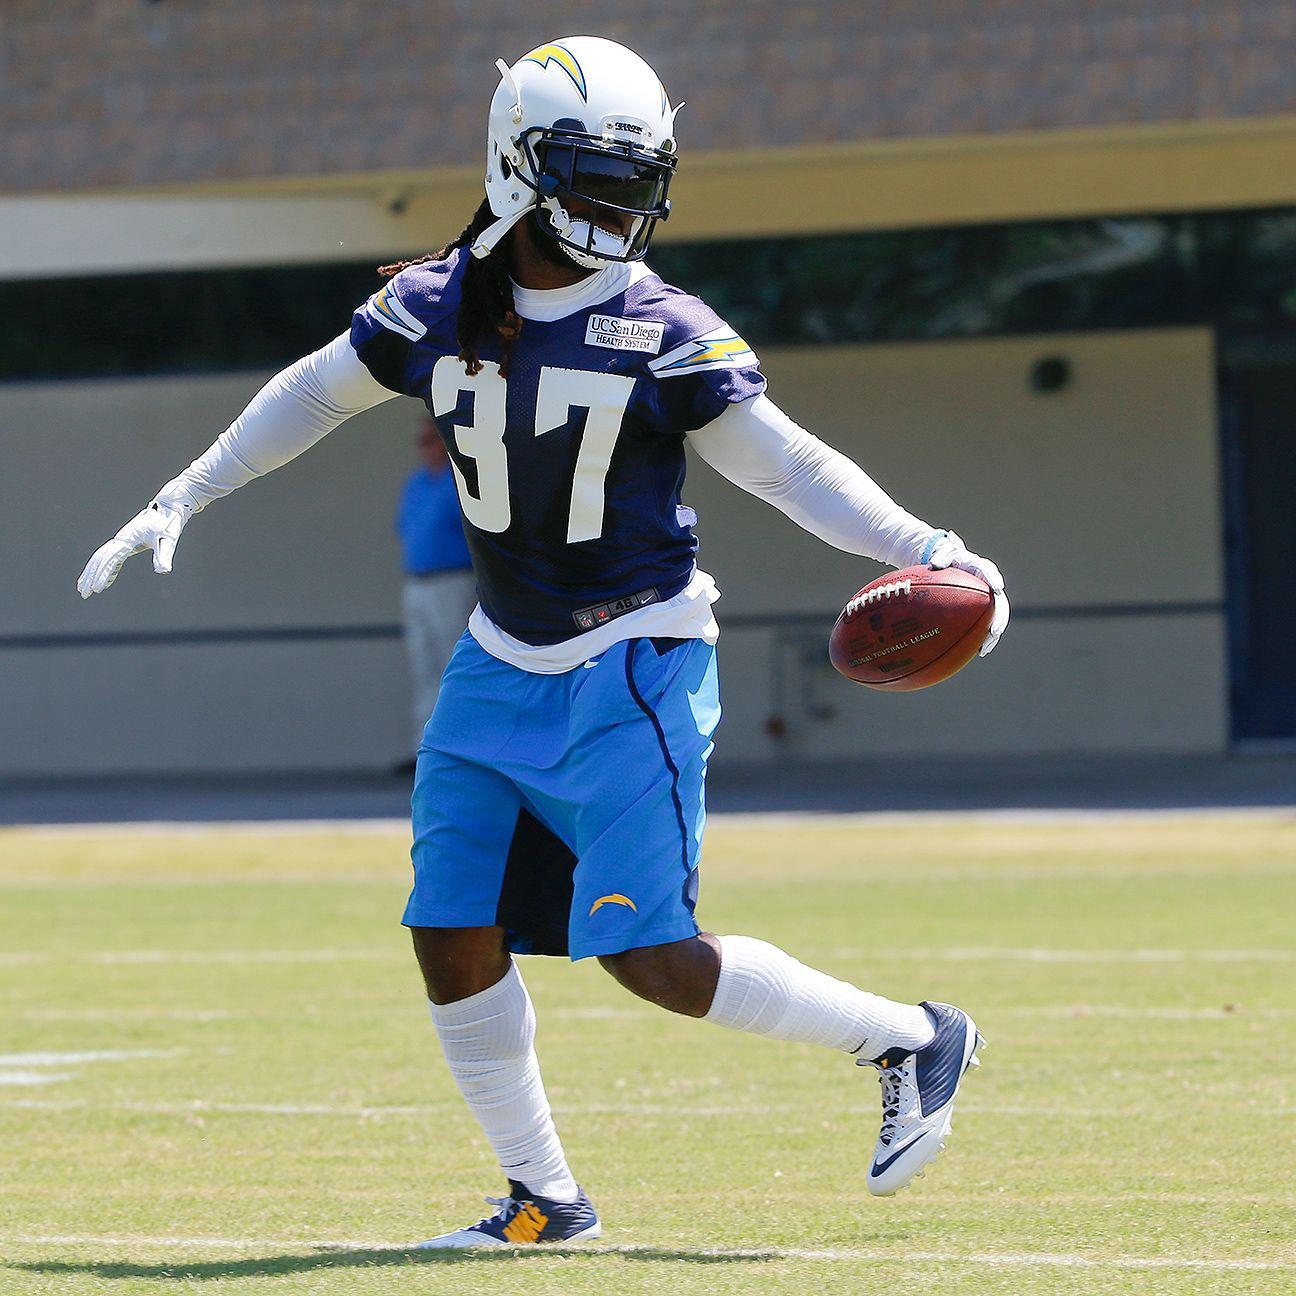 San Diego Chargers Blog: San Diego Chargers' Playing-time Breakdown